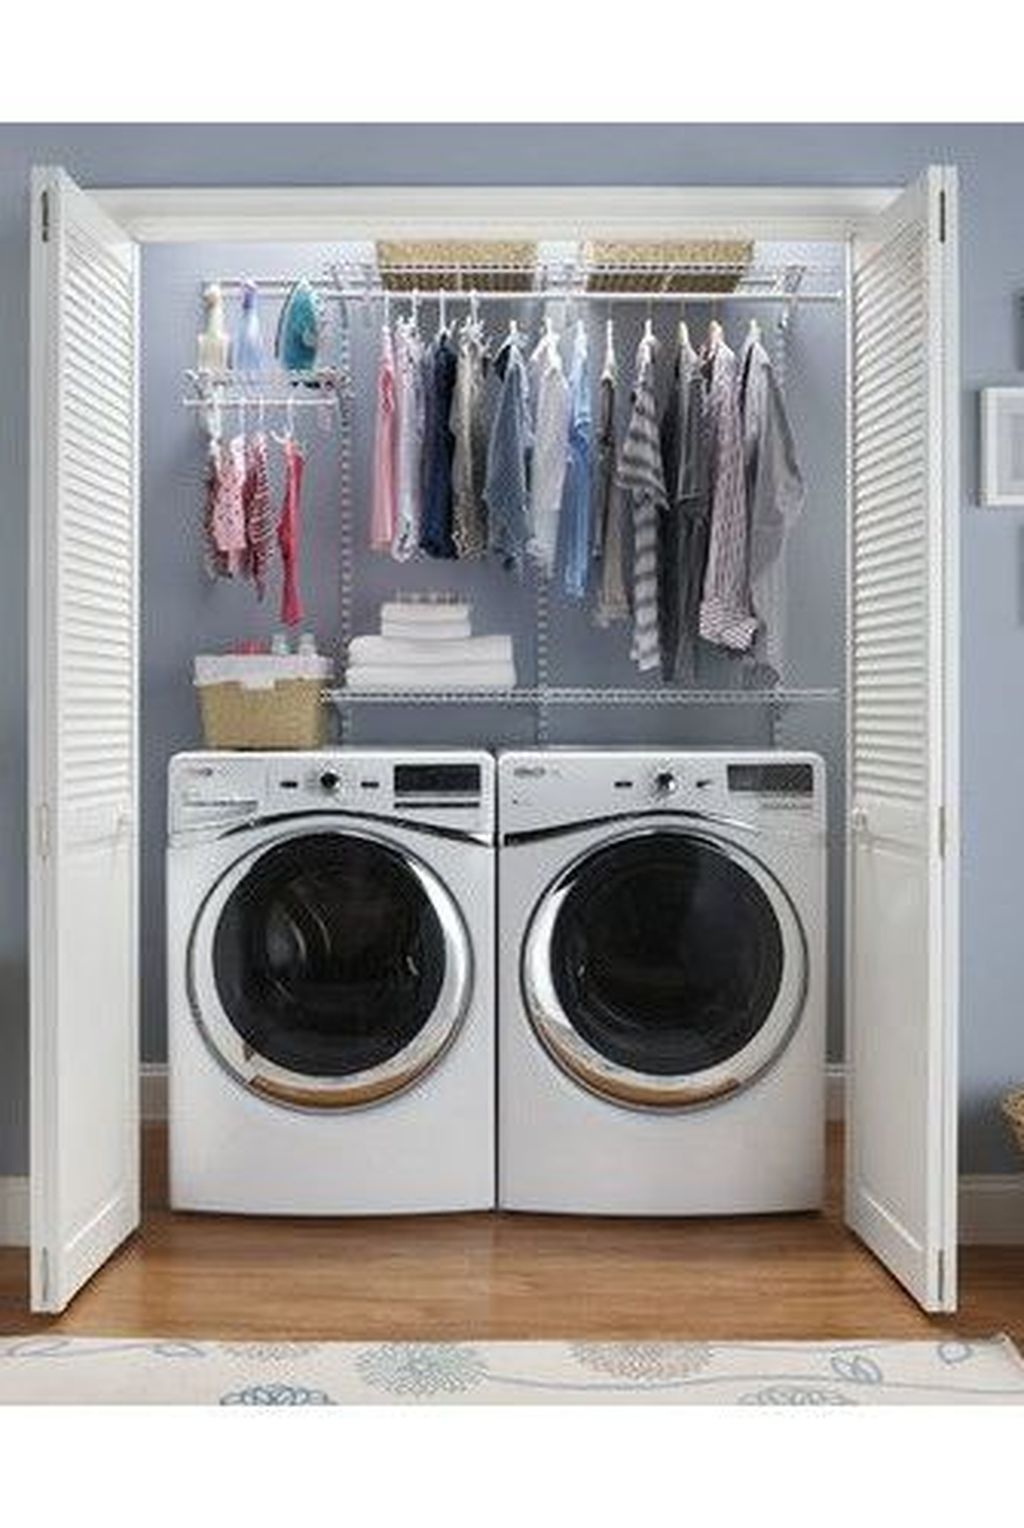 Unusual Laundry Arranging Design Ideas For Small Space To Try 38